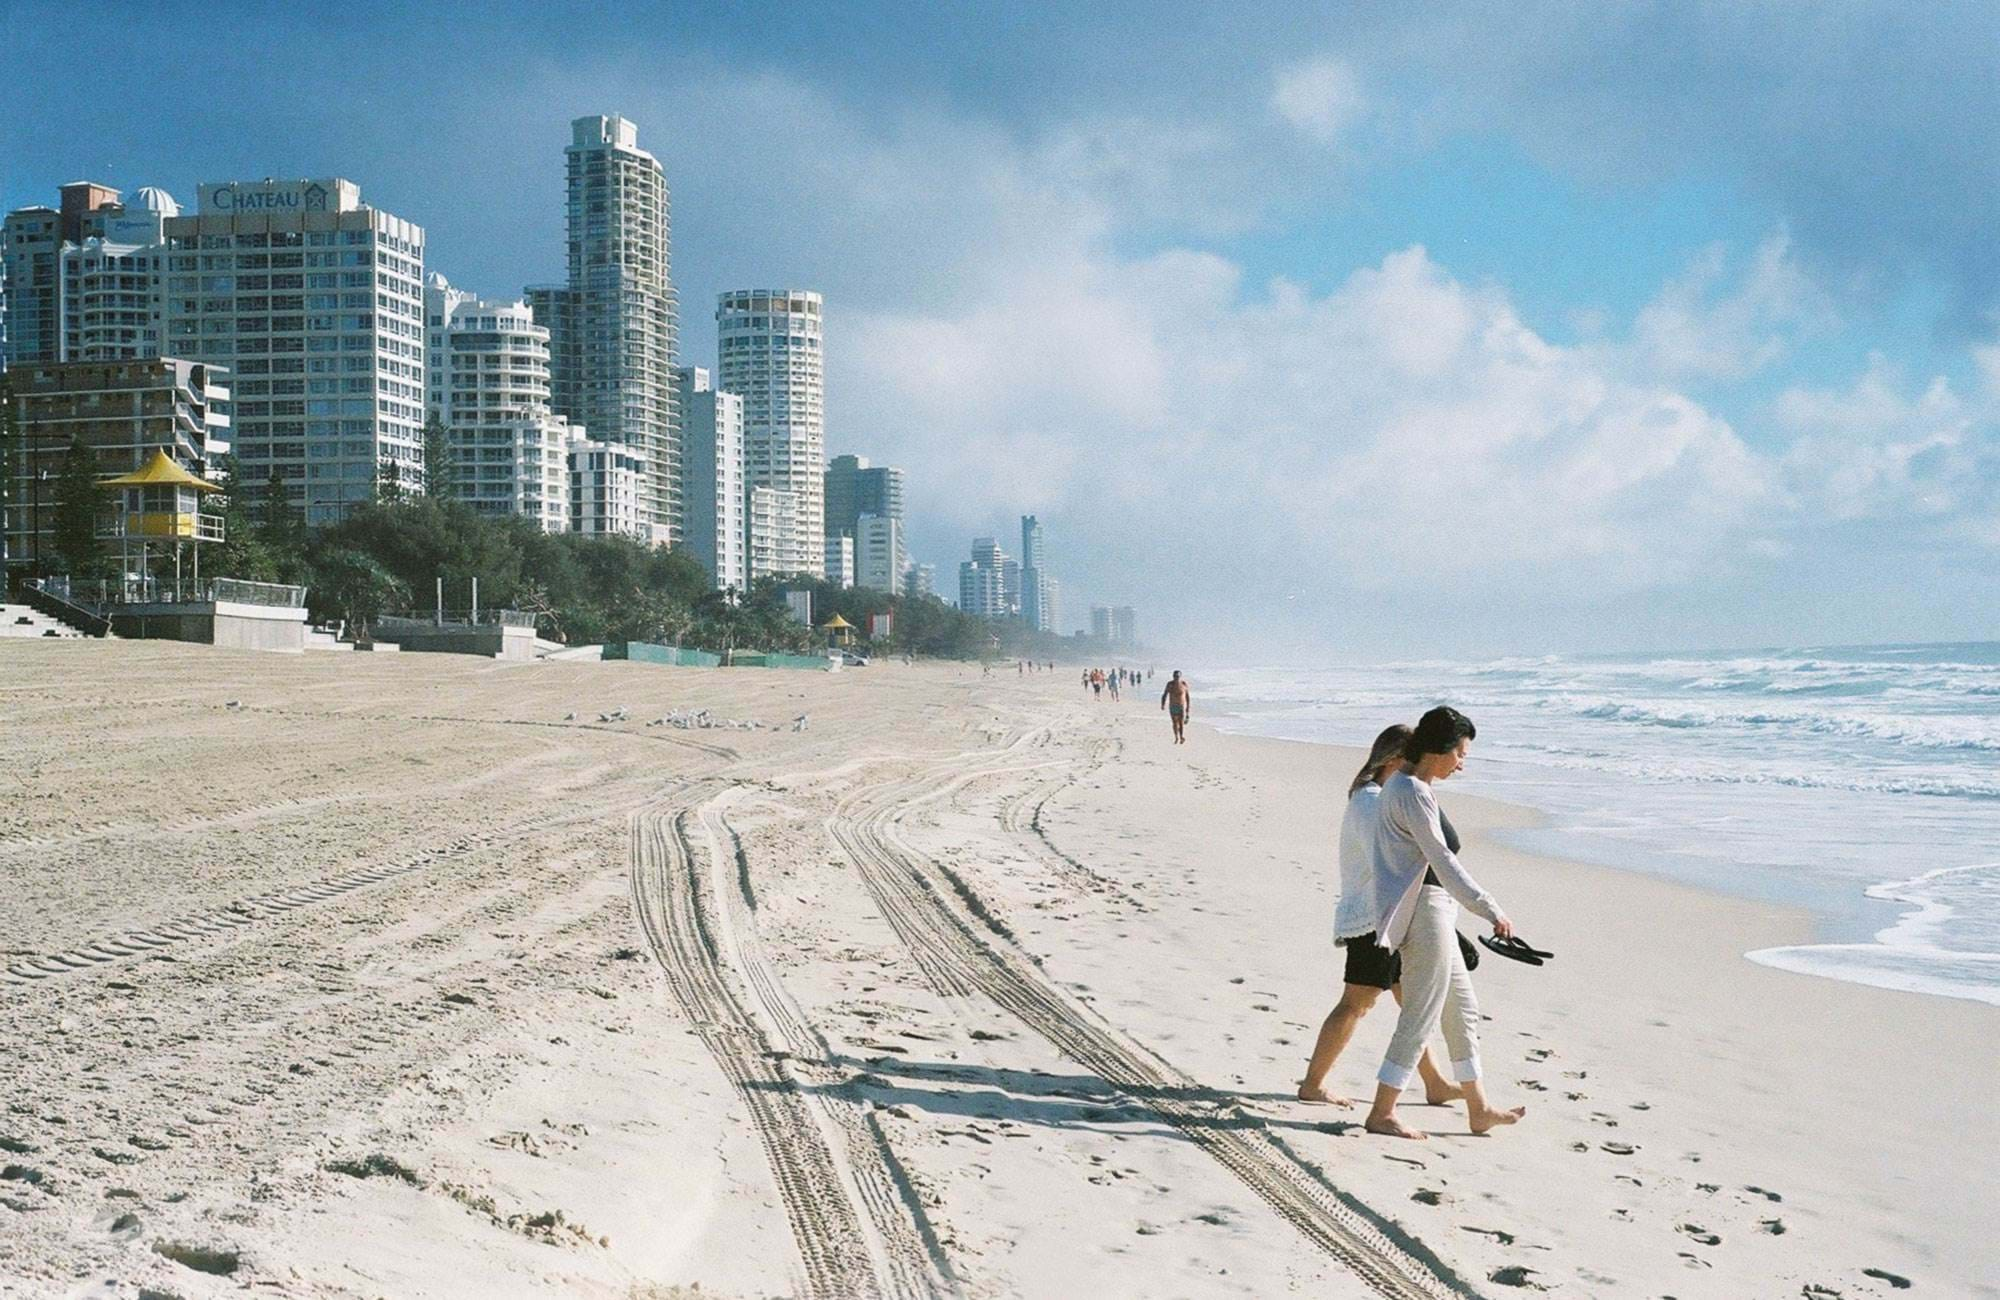 australias gold coast and the white sandy beaches